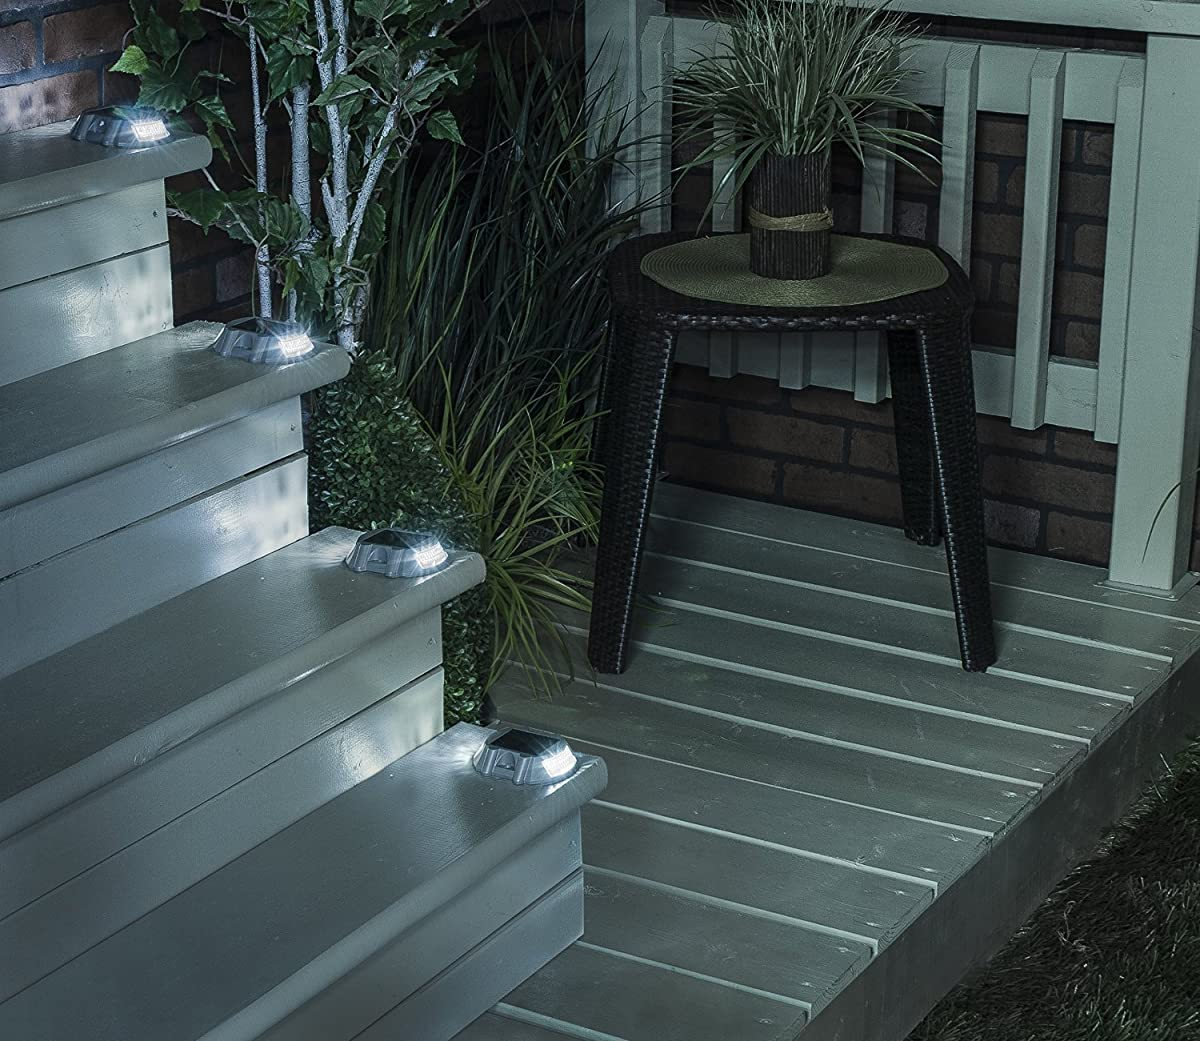 Solar Powered LED Marker Lights- Set of 4- Decorative Aluminum Lamps- Wireless Outdoor Security Light- Garden Decor Accent Lighting- Best for Driveway, Dock, Stairway, Path, Deck, Step, Pool, Patio